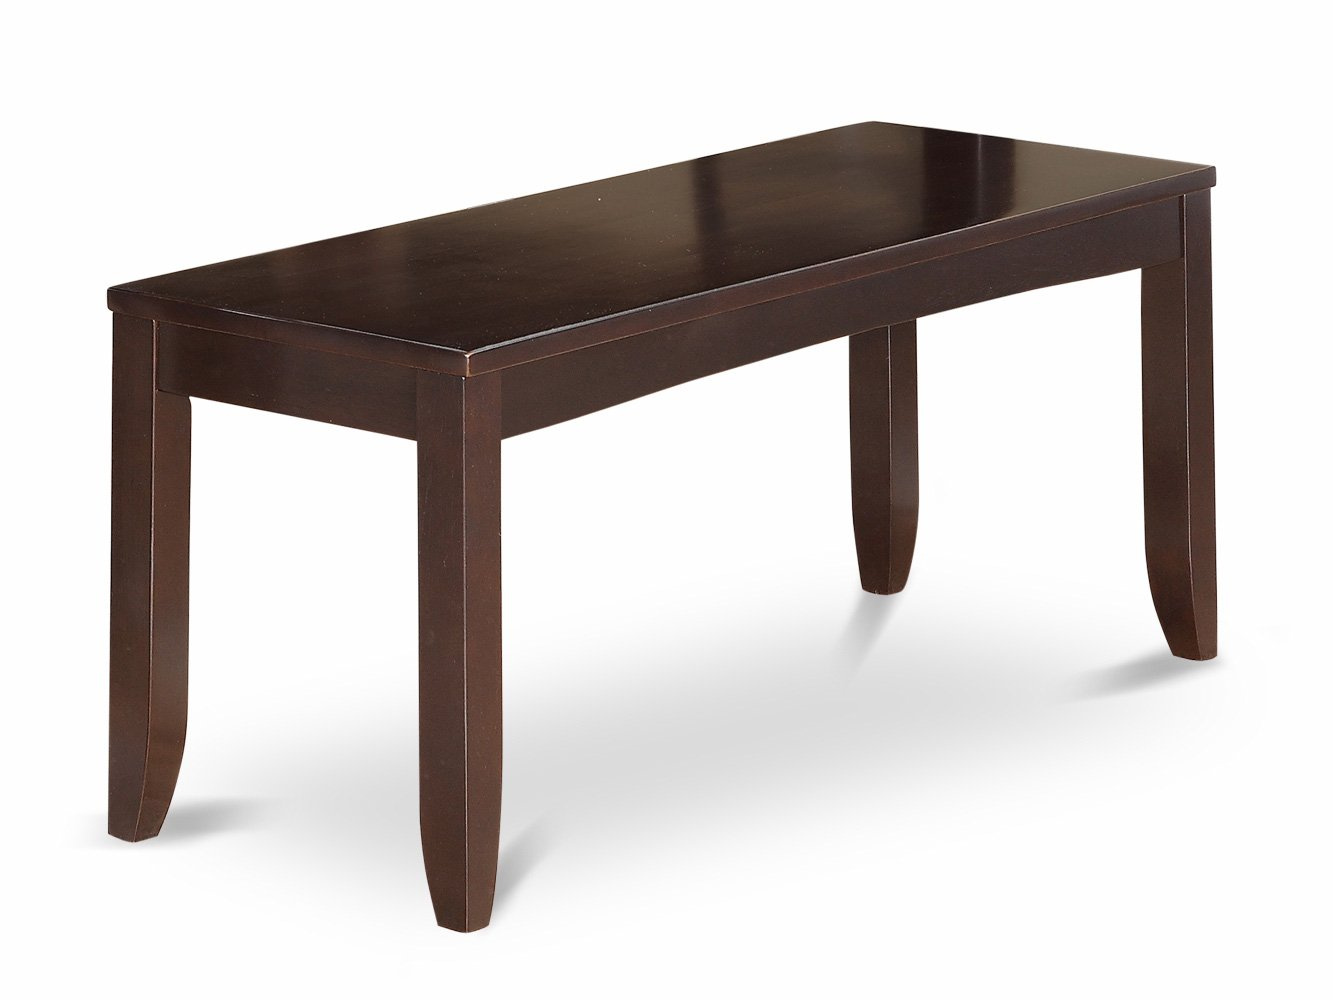 East West Furniture LYB-CAP-W Dining Bench with Wood Seat, Cappuccino Finish